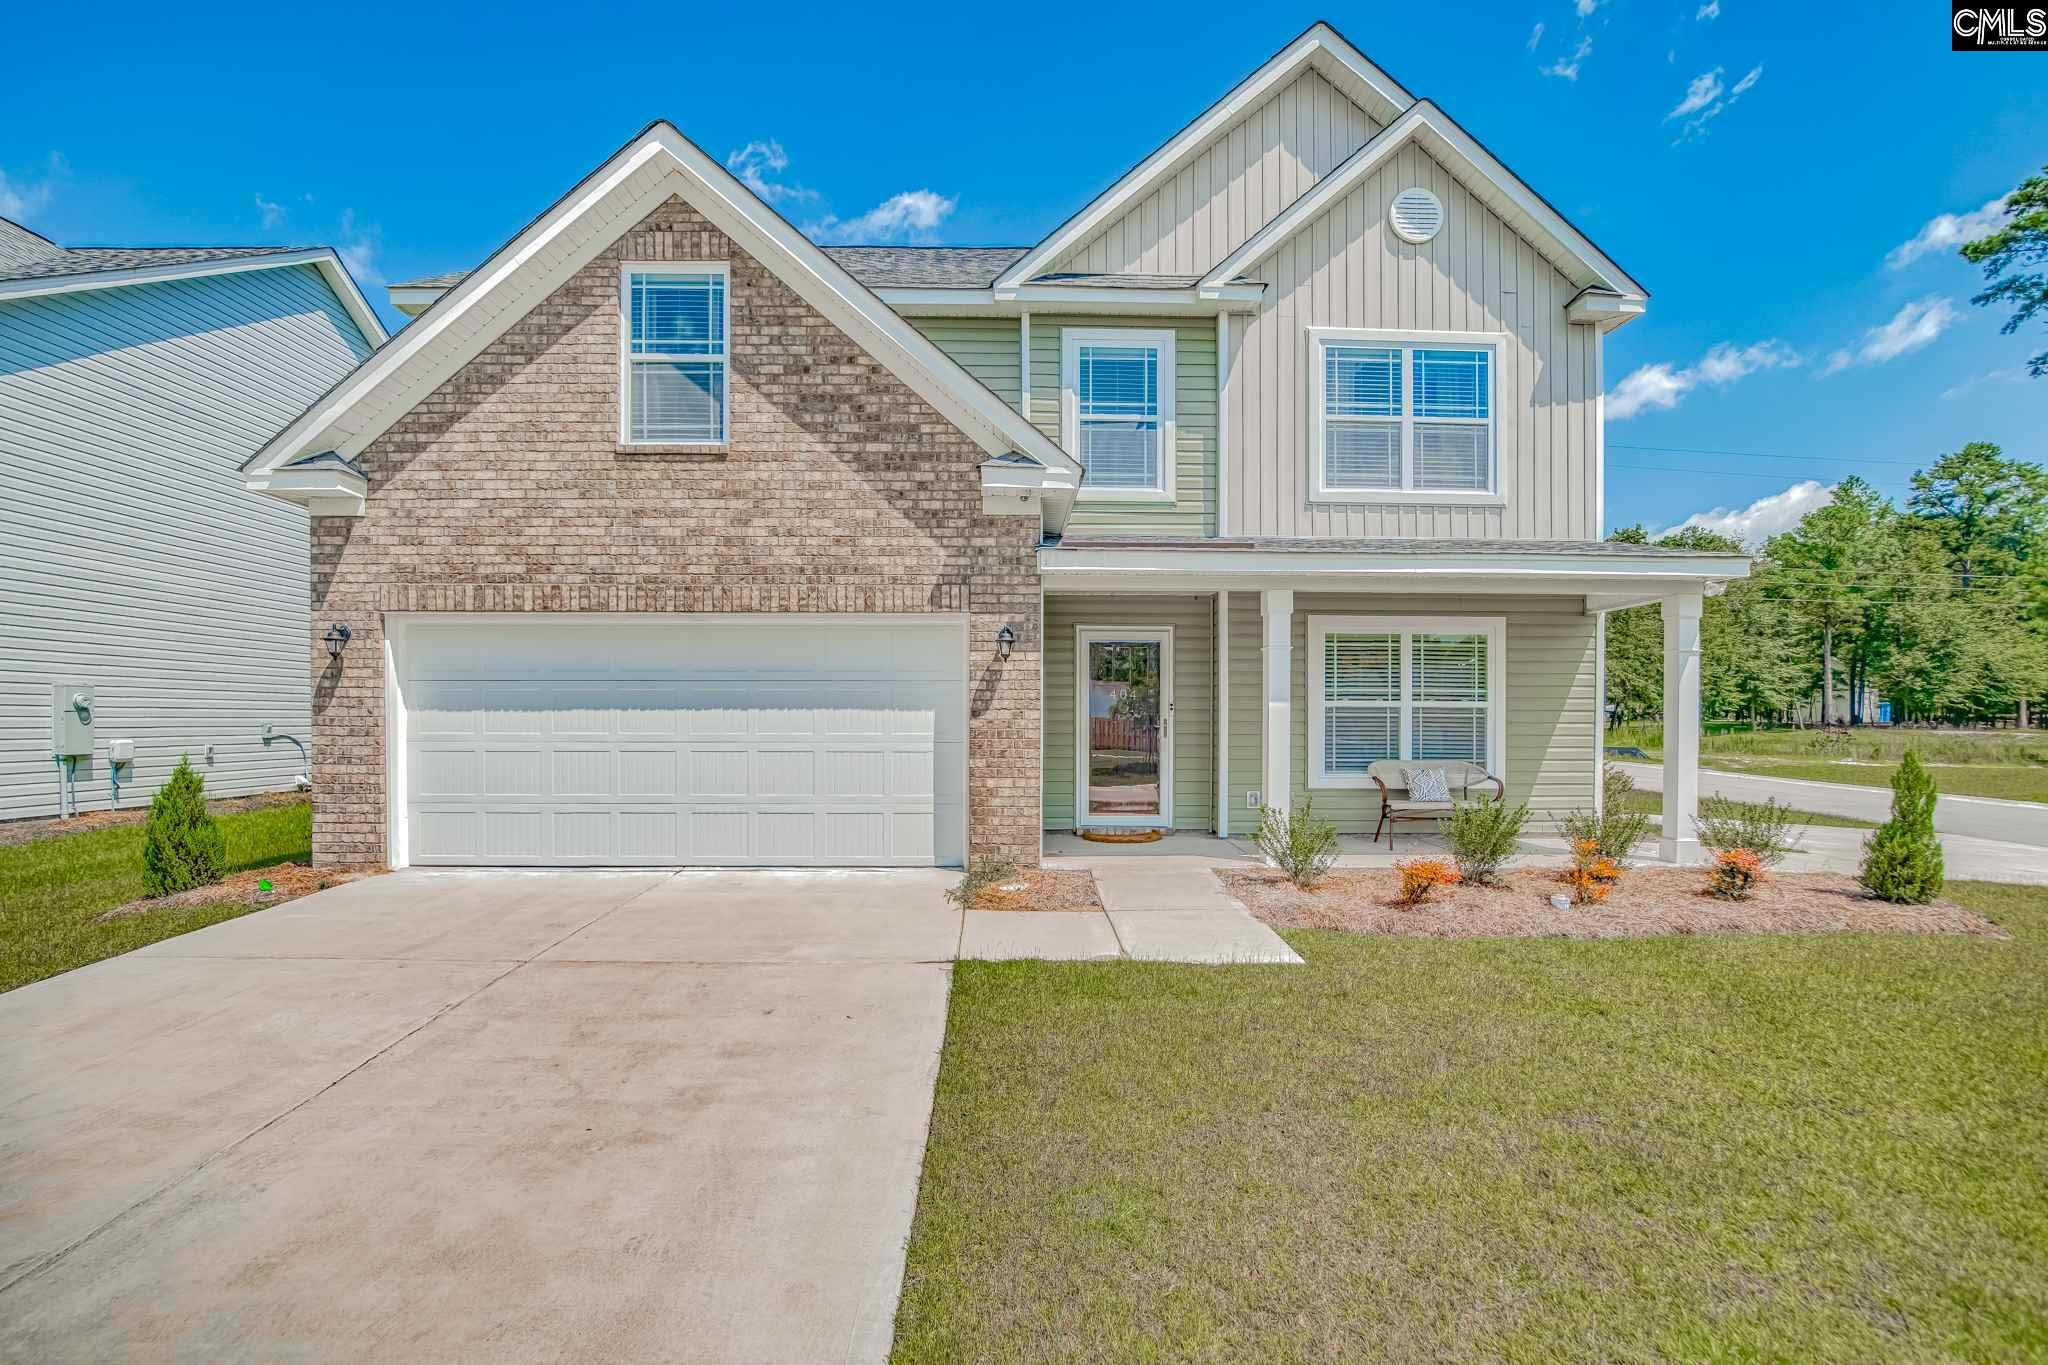 641 Watershed Columbia, SC 29223